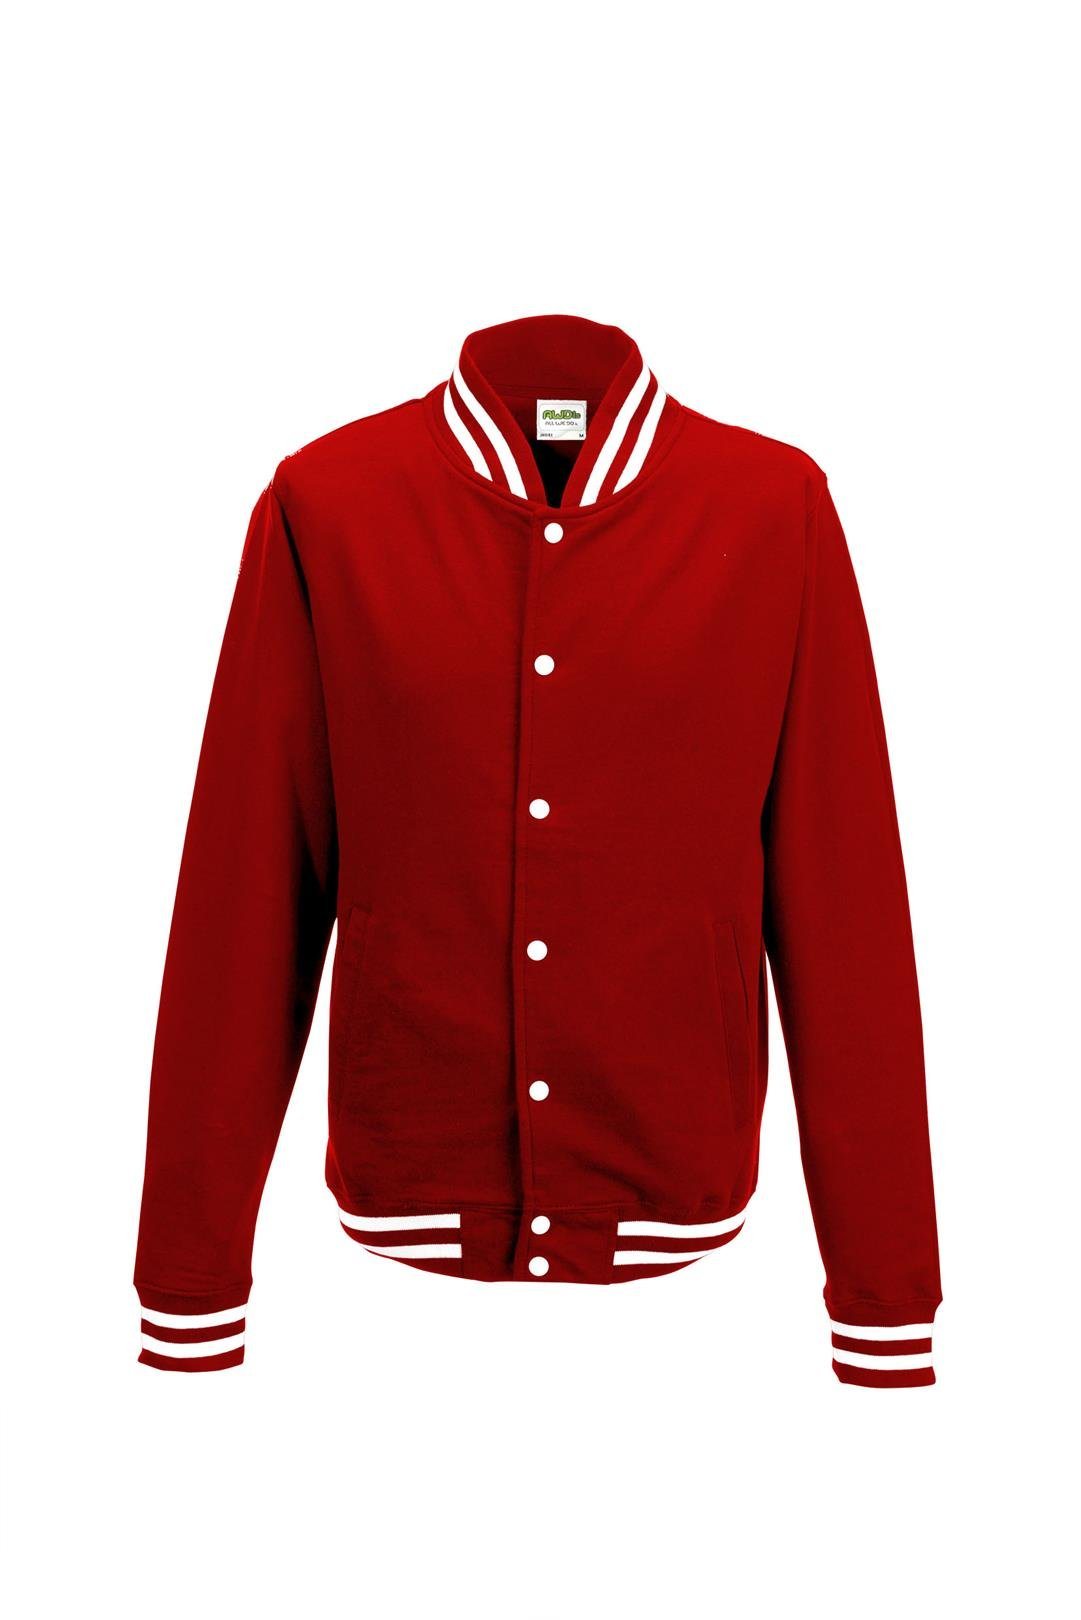 Awdis Mens College Jacket (M) (Fire Red)